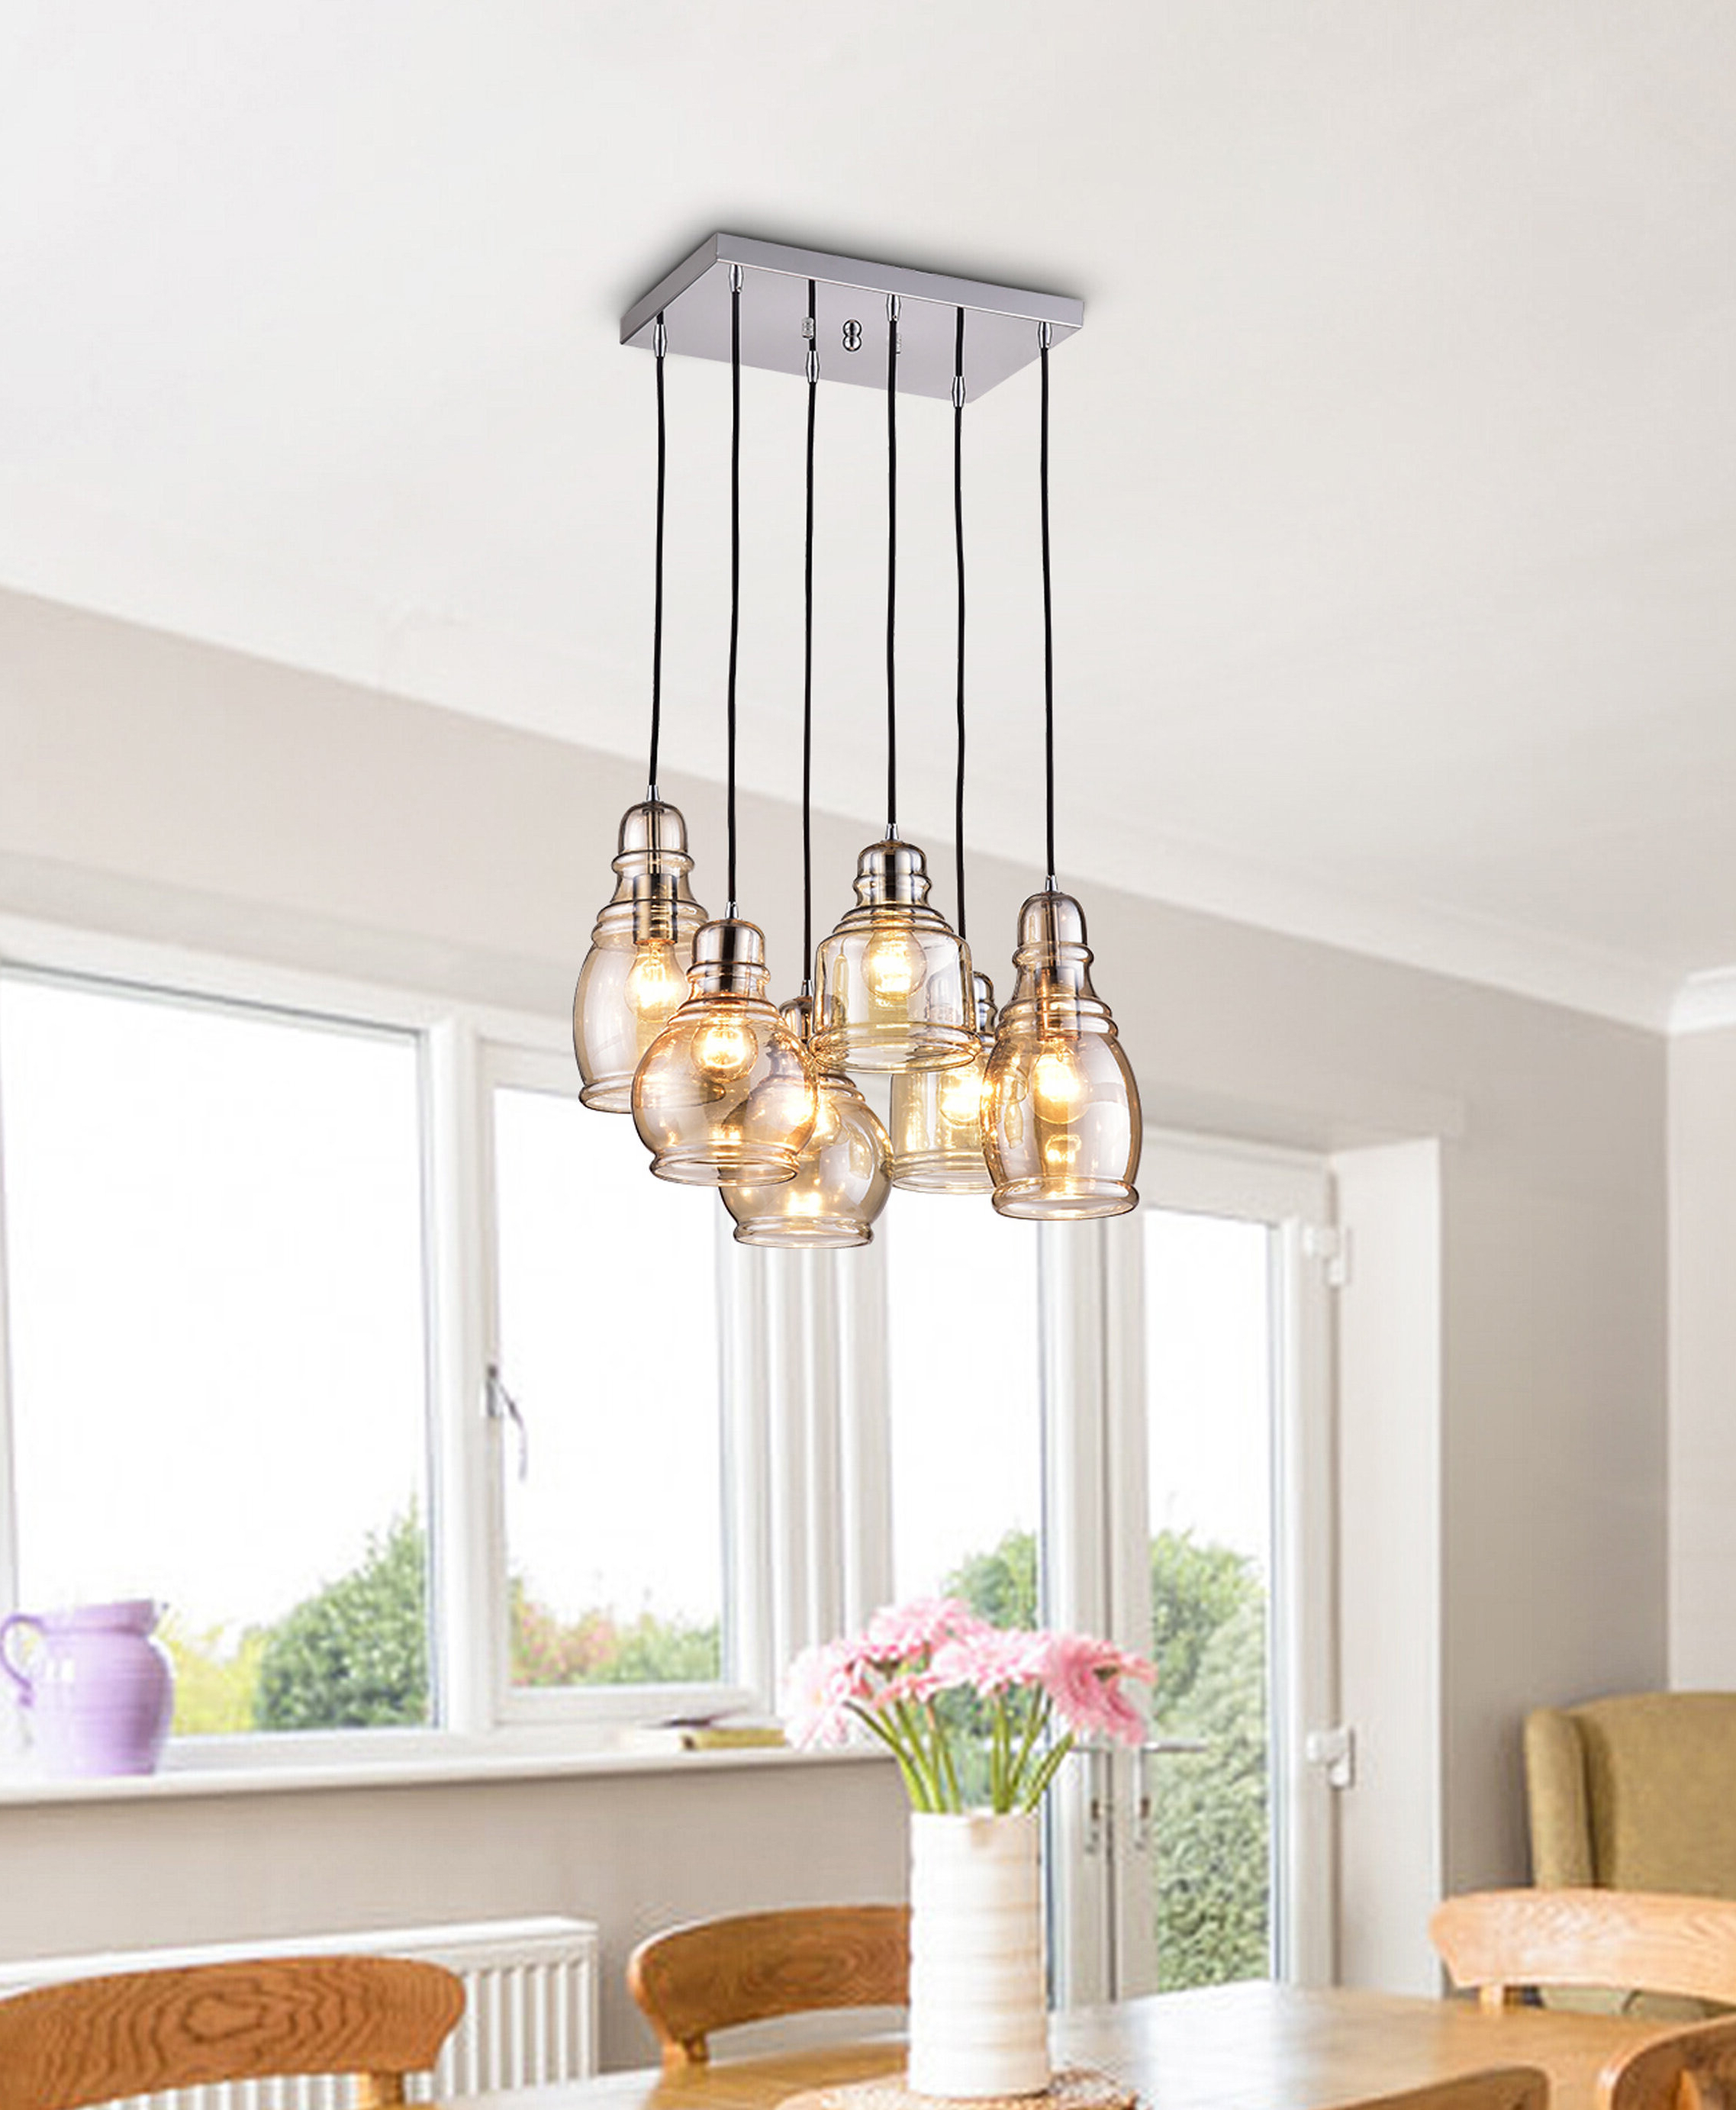 Well Liked Pruett 6 Light Cluster Bell Pendant Throughout Pruett Cognac Glass 8 Light Cluster Pendants (View 19 of 20)